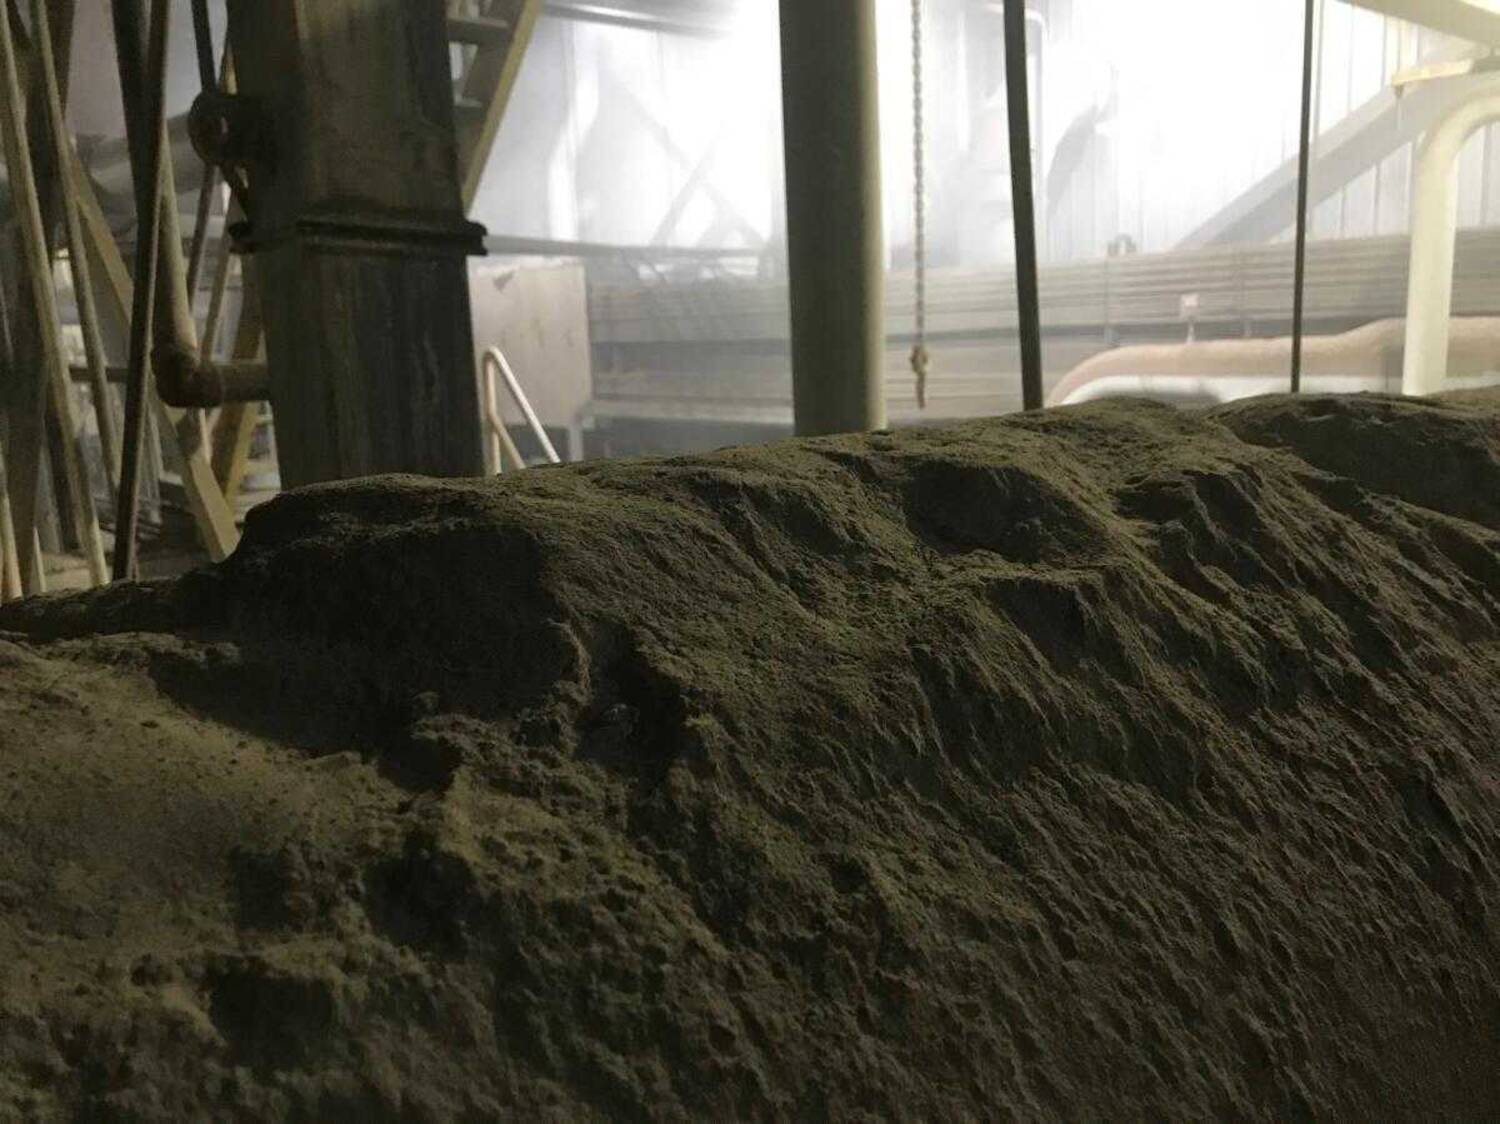 Mounds of dust pile high along a ventilation pipe that runs above workers' heads in the furnace department.